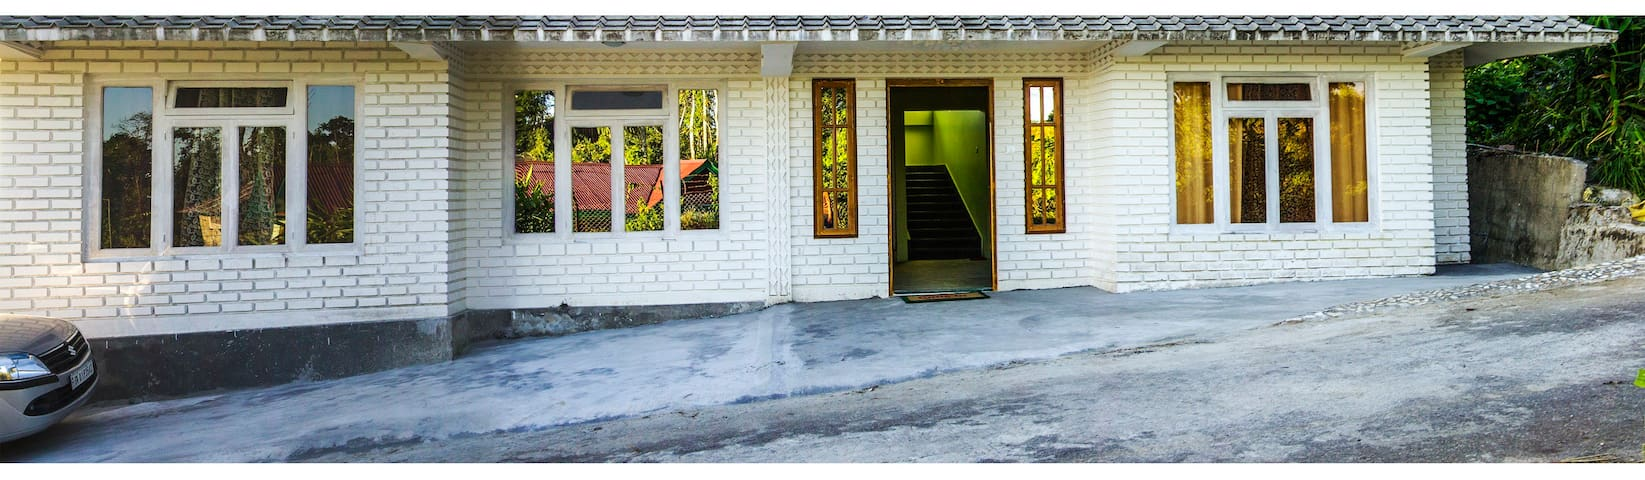 Live Away Home 2 - Room 2 - Kalimpong